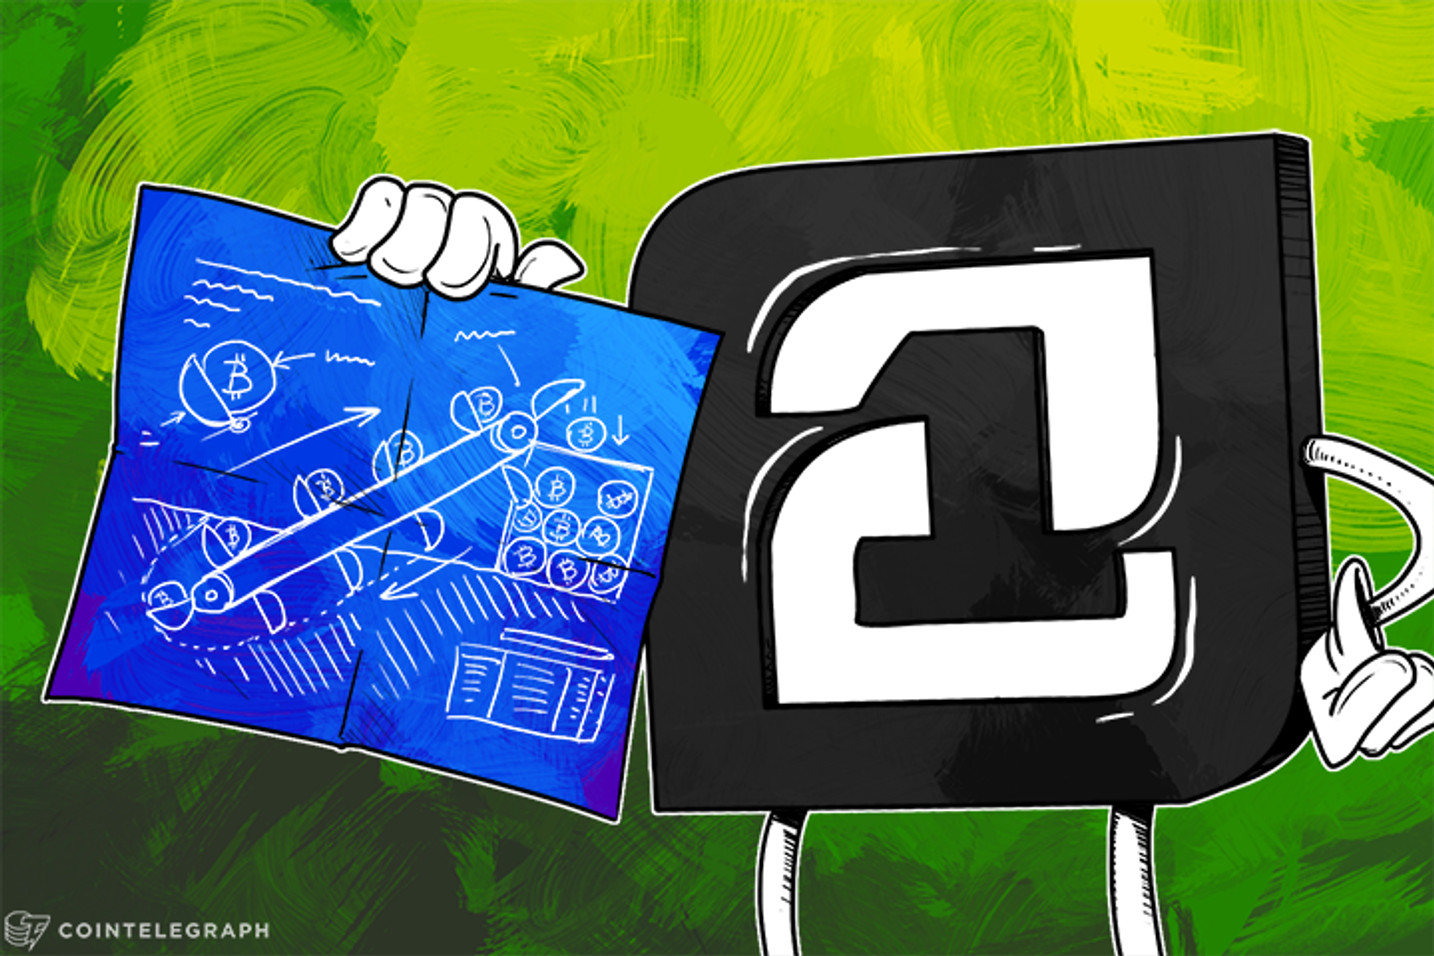 21 Inc Reveals Profit Sharing Technology Plans in Patent Application